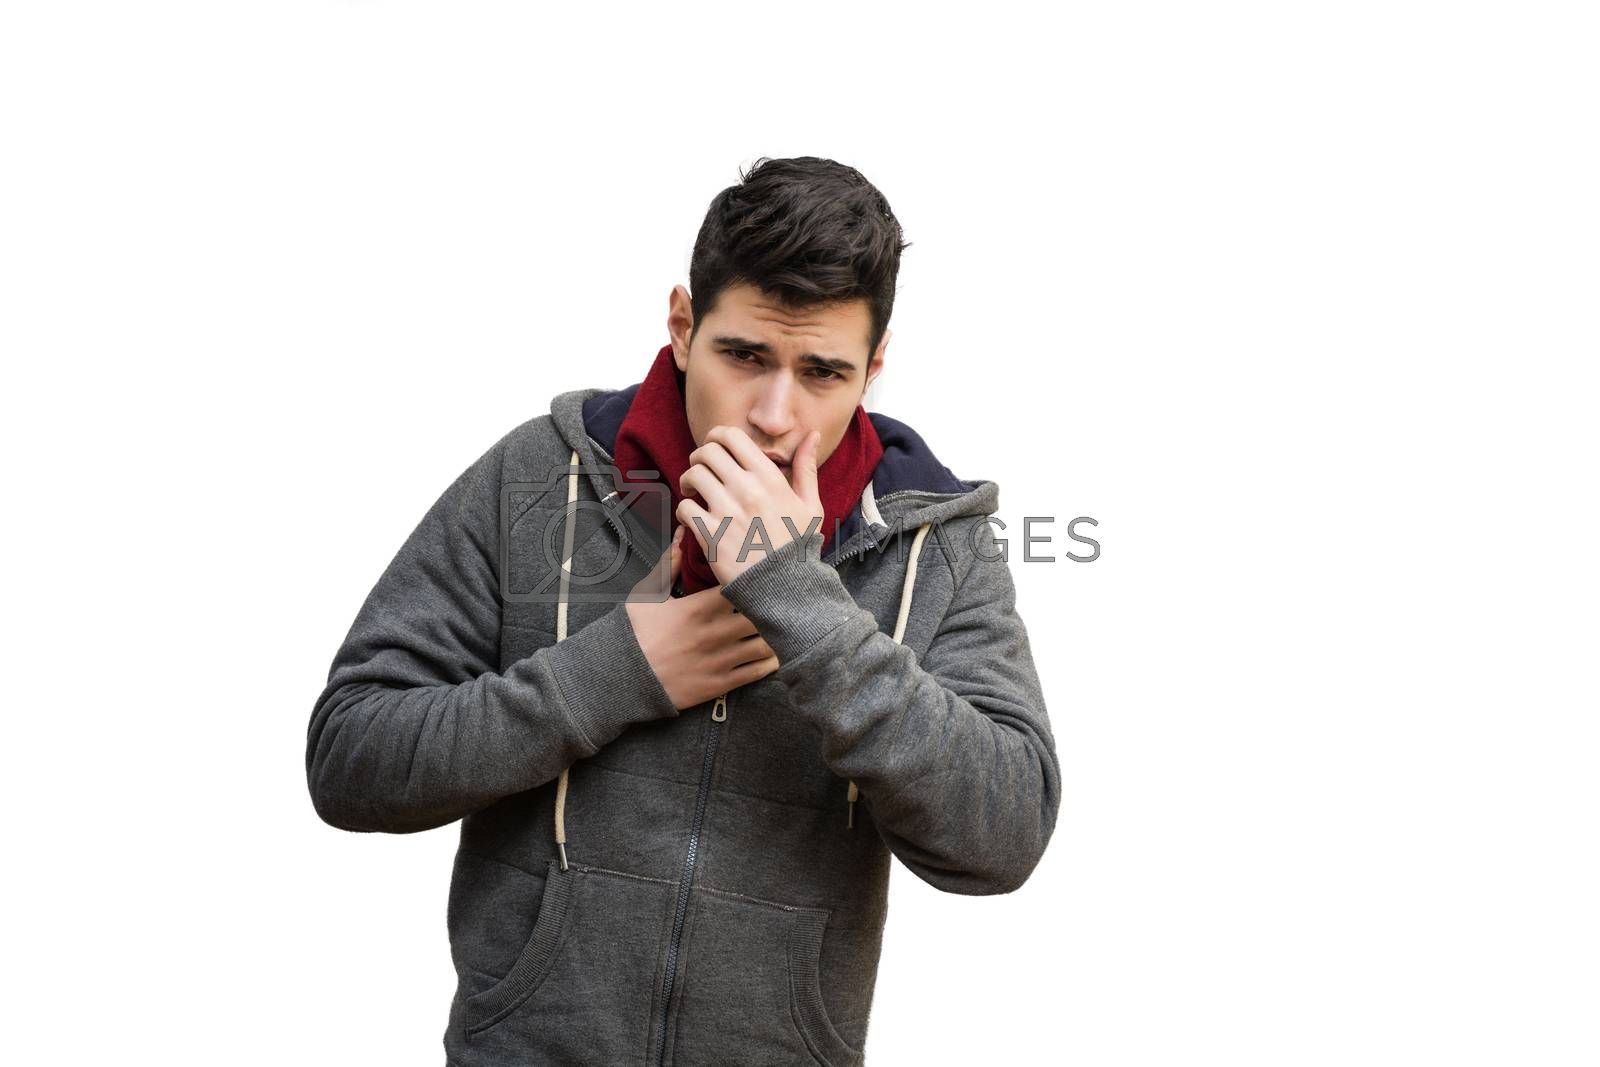 Young man sick with flu or cold, coughing with hand in front of his mouth, isolated on white